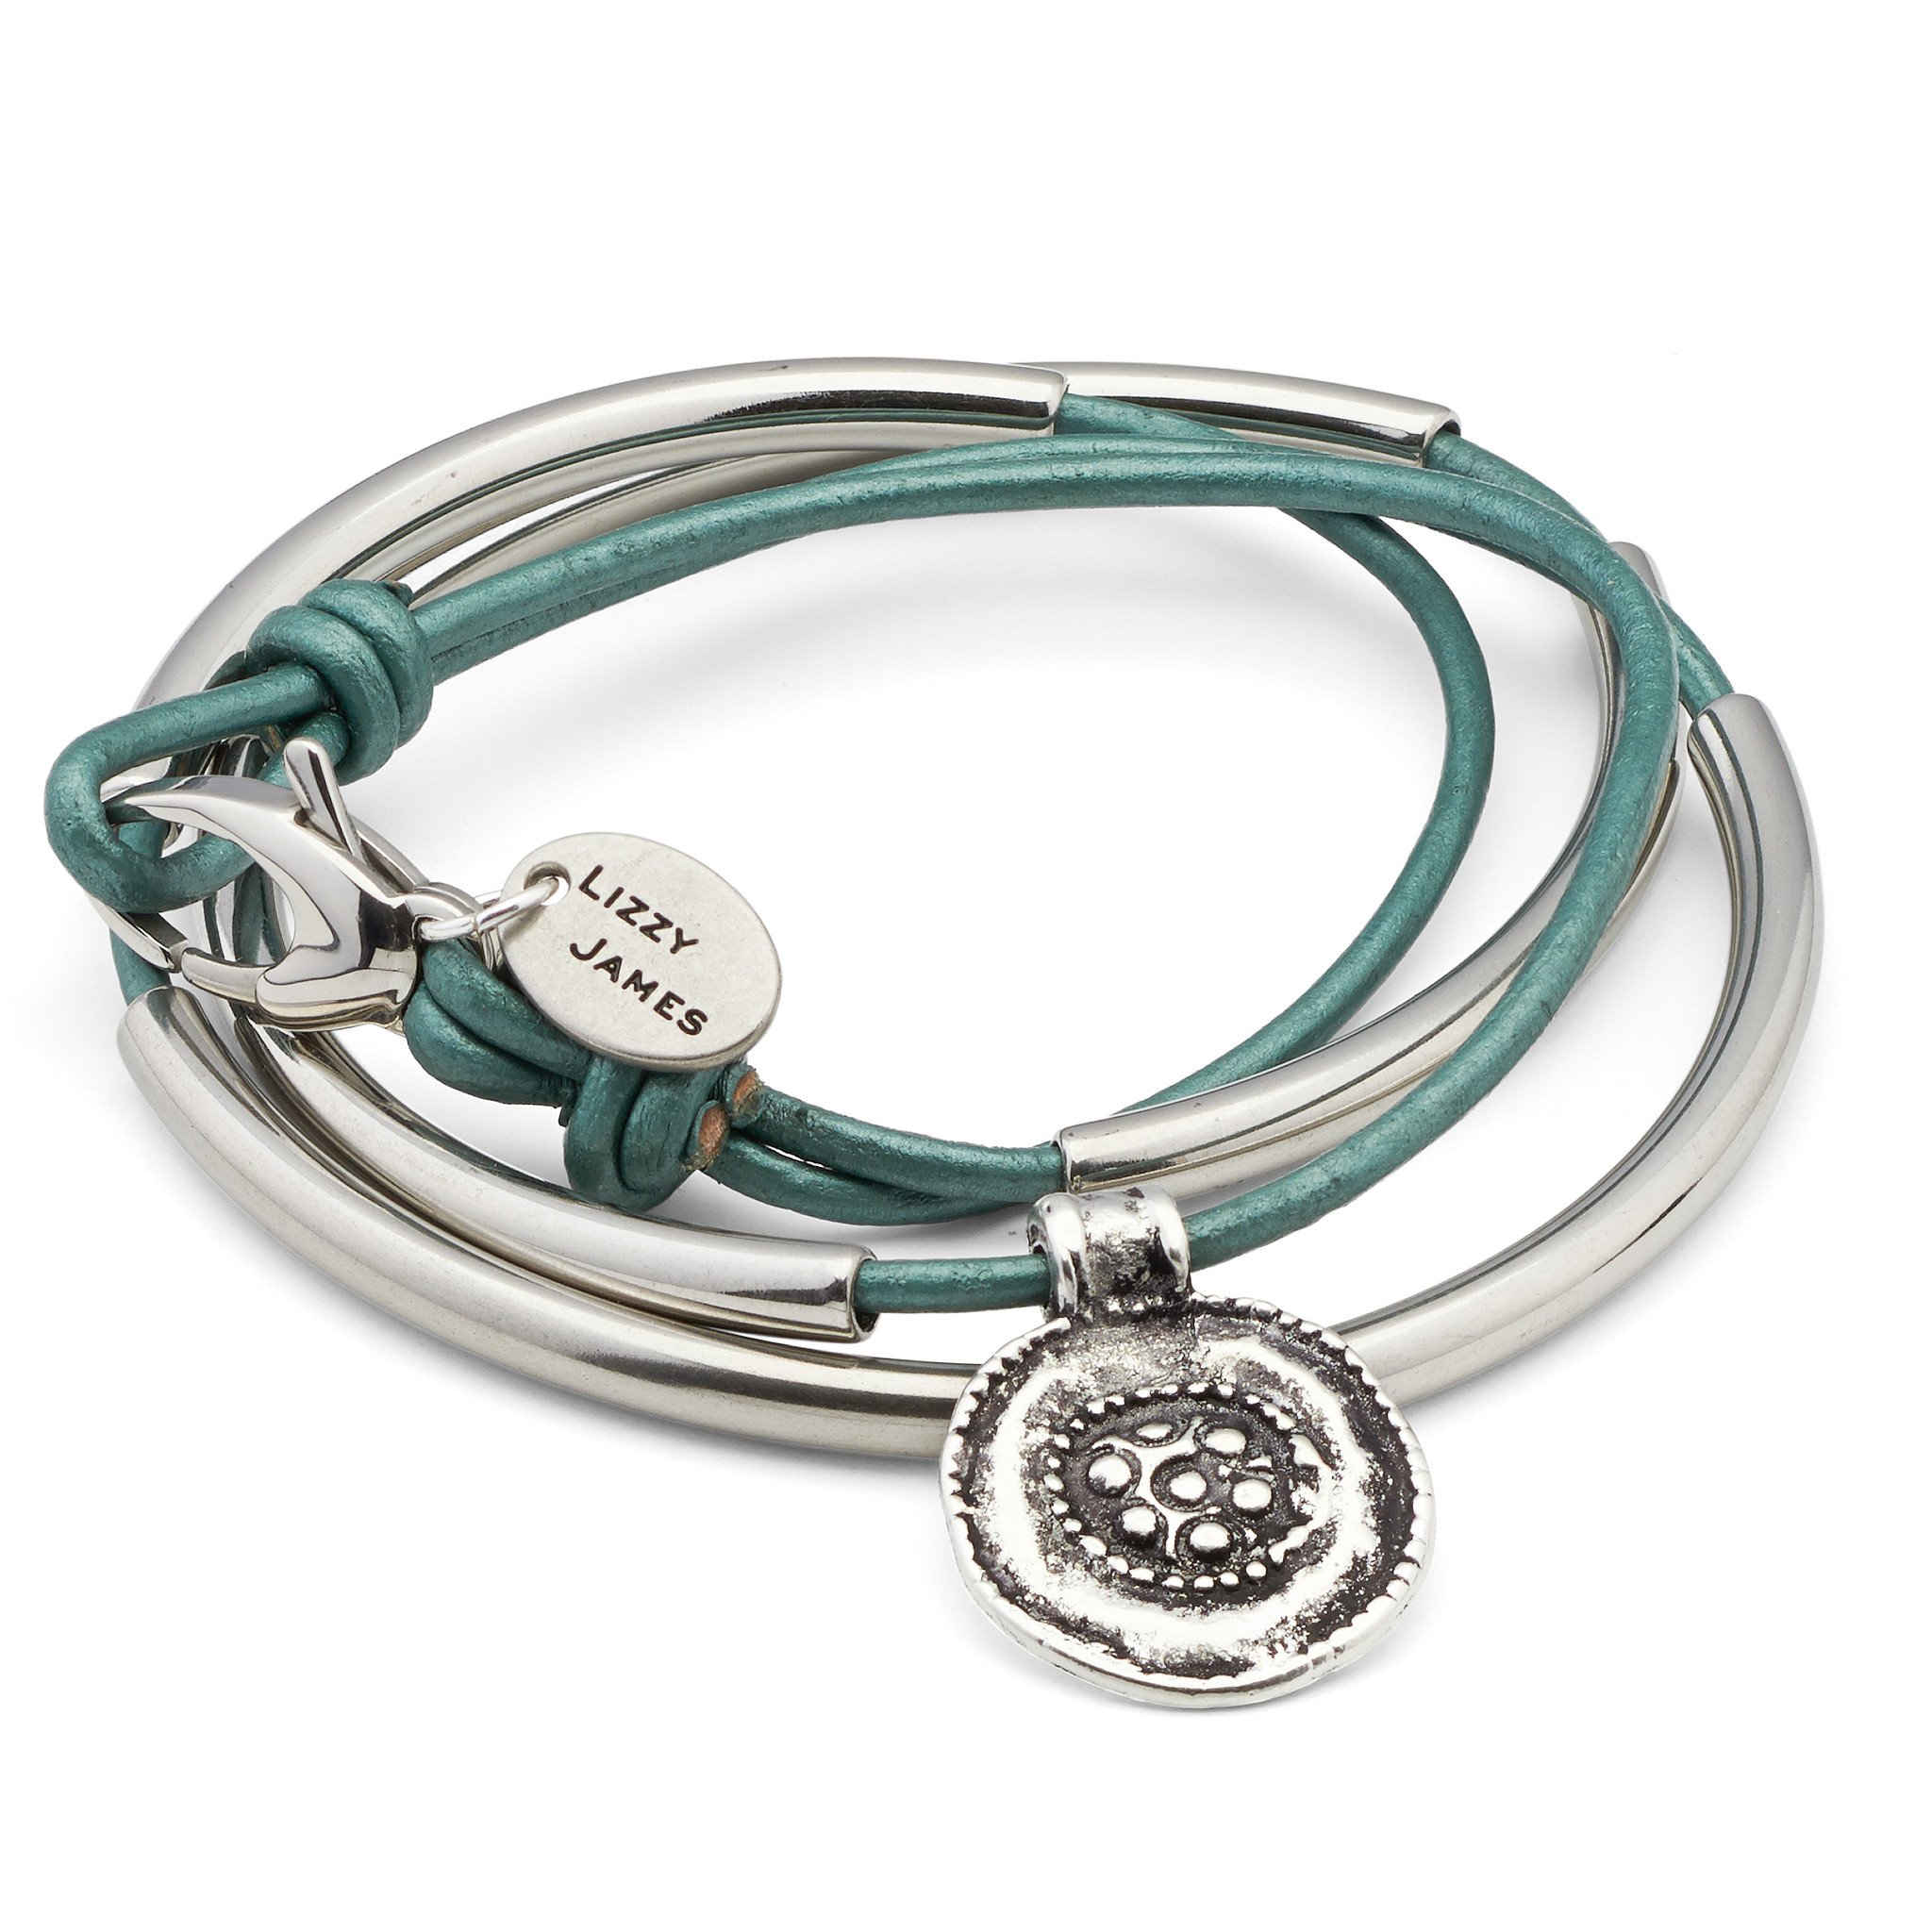 Mini Santana XXLarge Bracelet With Metallic Teal Leather by Lizzy James